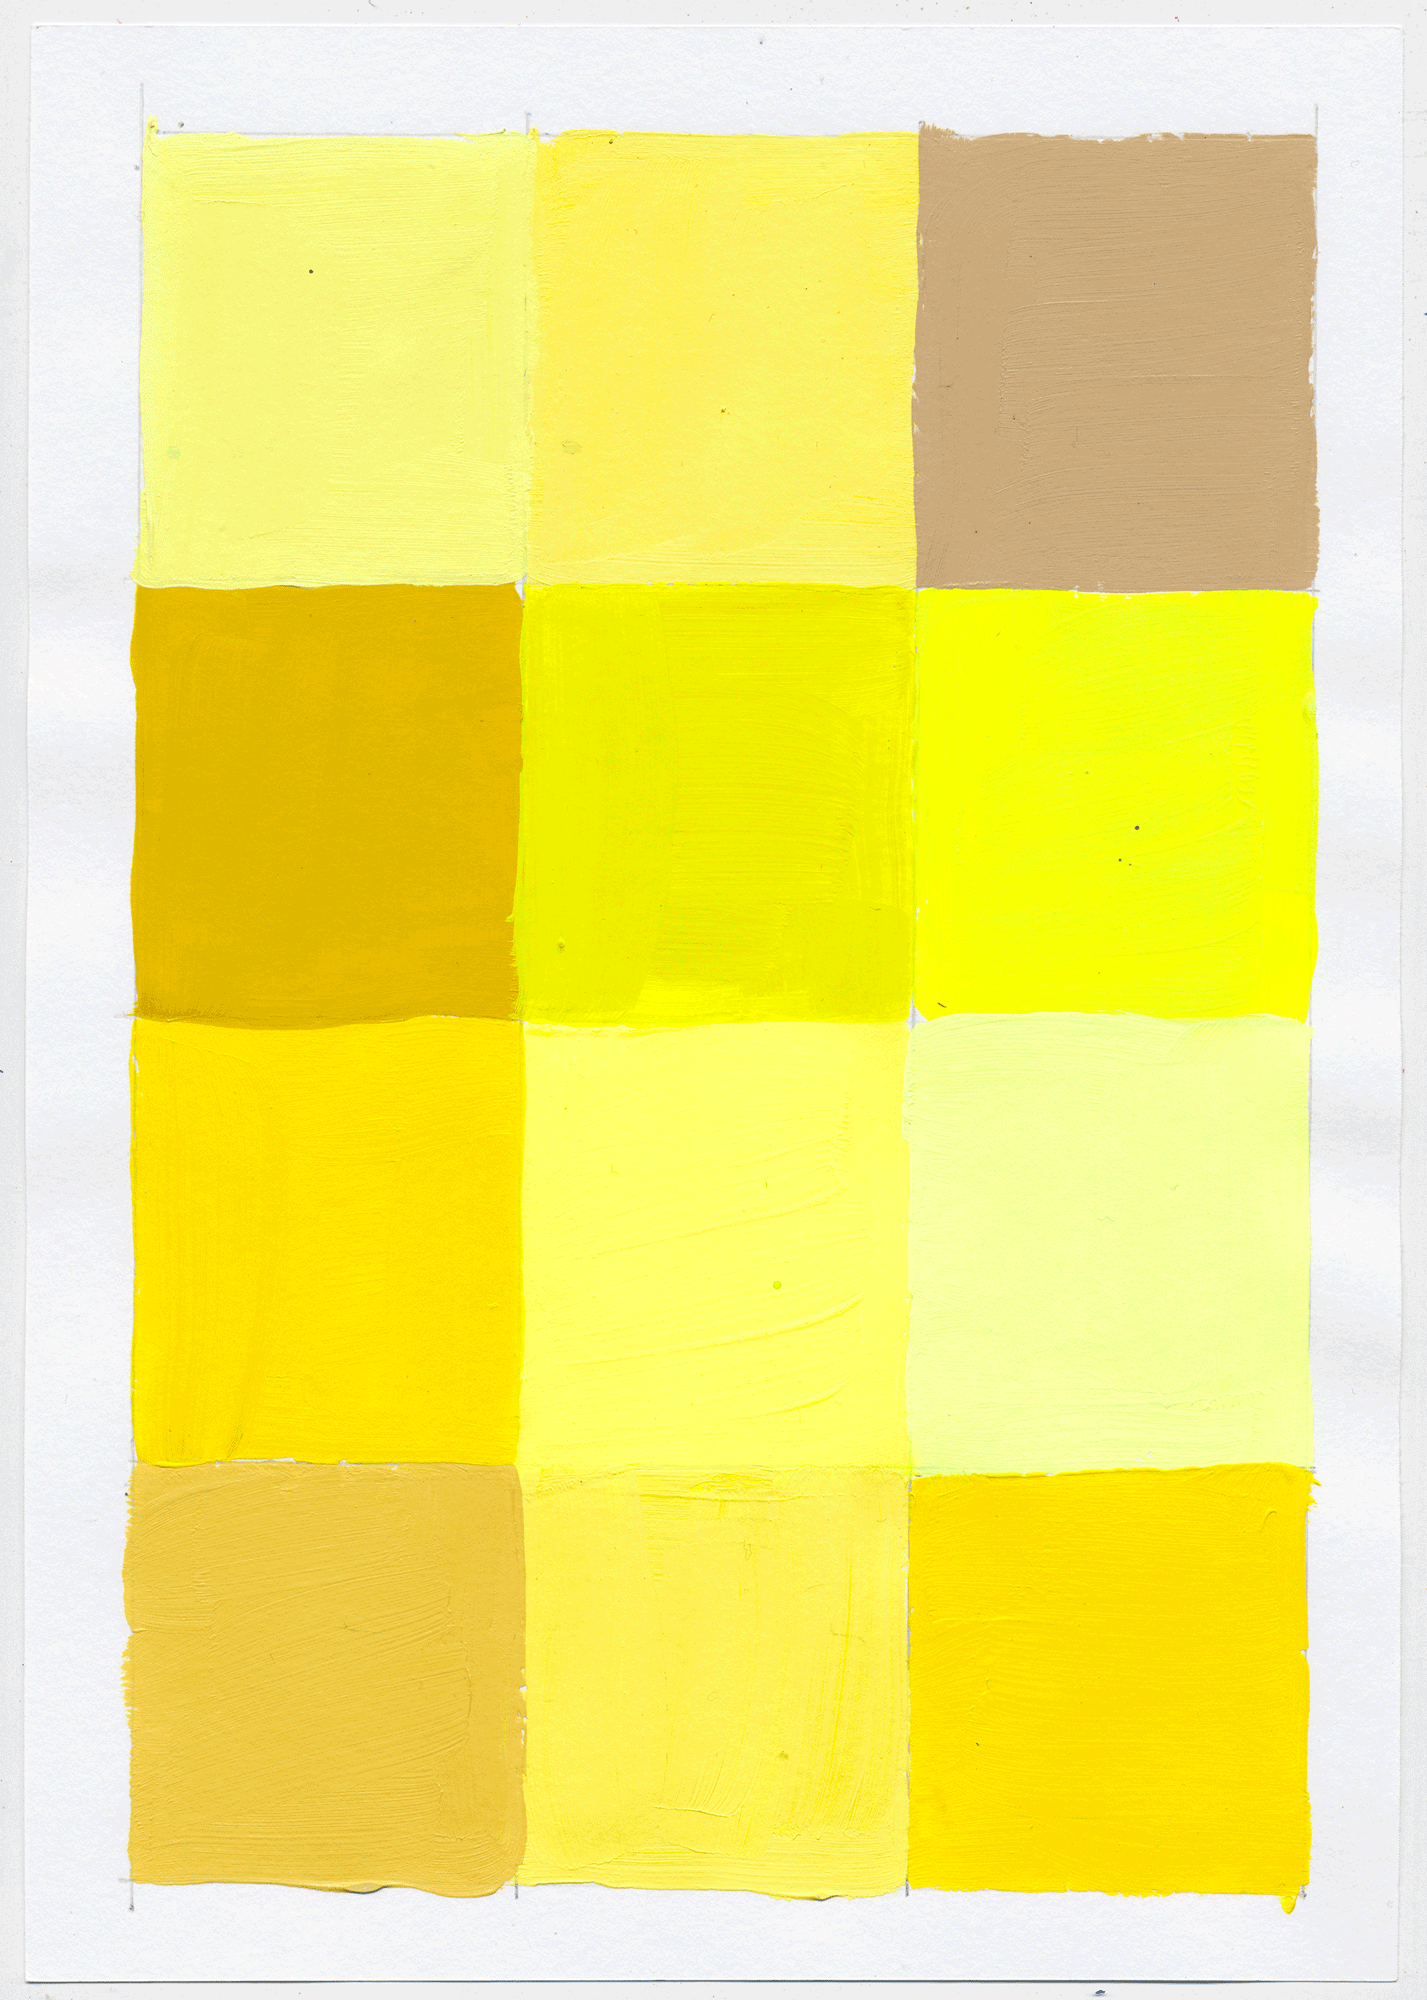 "NY1747 10"" X 7"", acrylic on paper, 2017  available on Etsy   12 little squares to help figure out the intricacies of pink, yellow & blue. there's NEVER an end to  figuring it out,  cuz you don't. PLAY!"